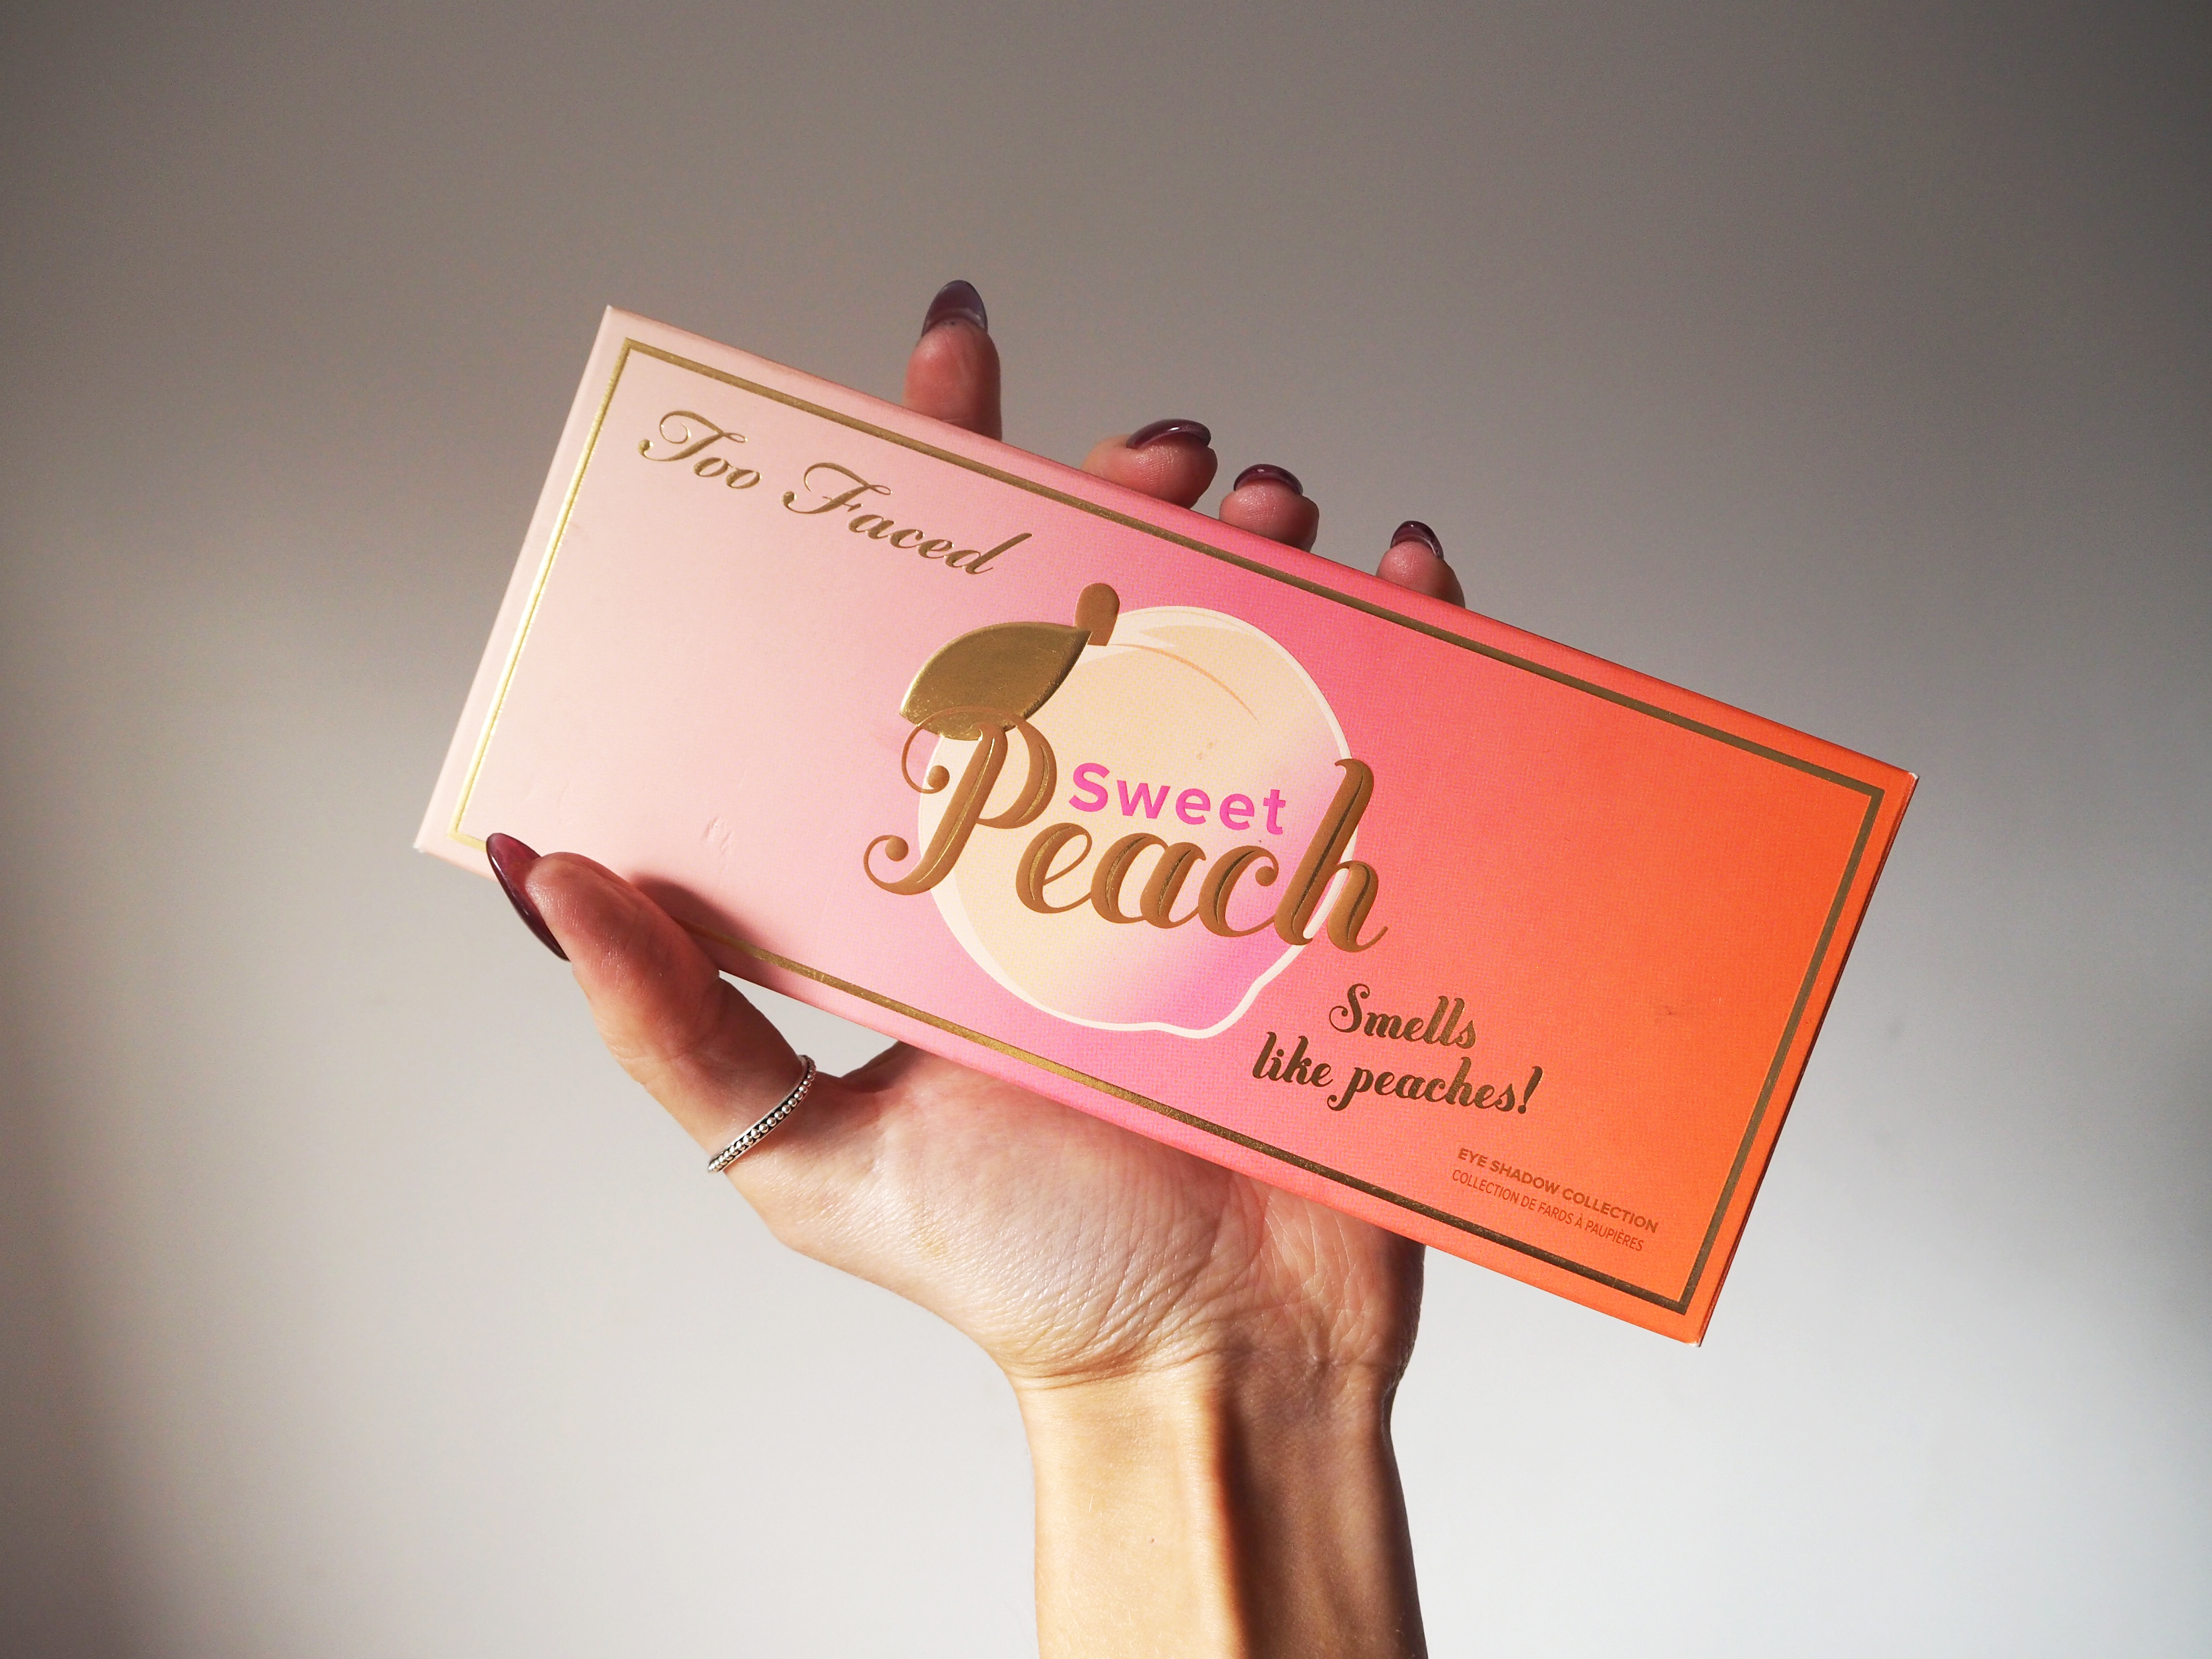 Too Faced Sweet Peach Palette Swatches and Review